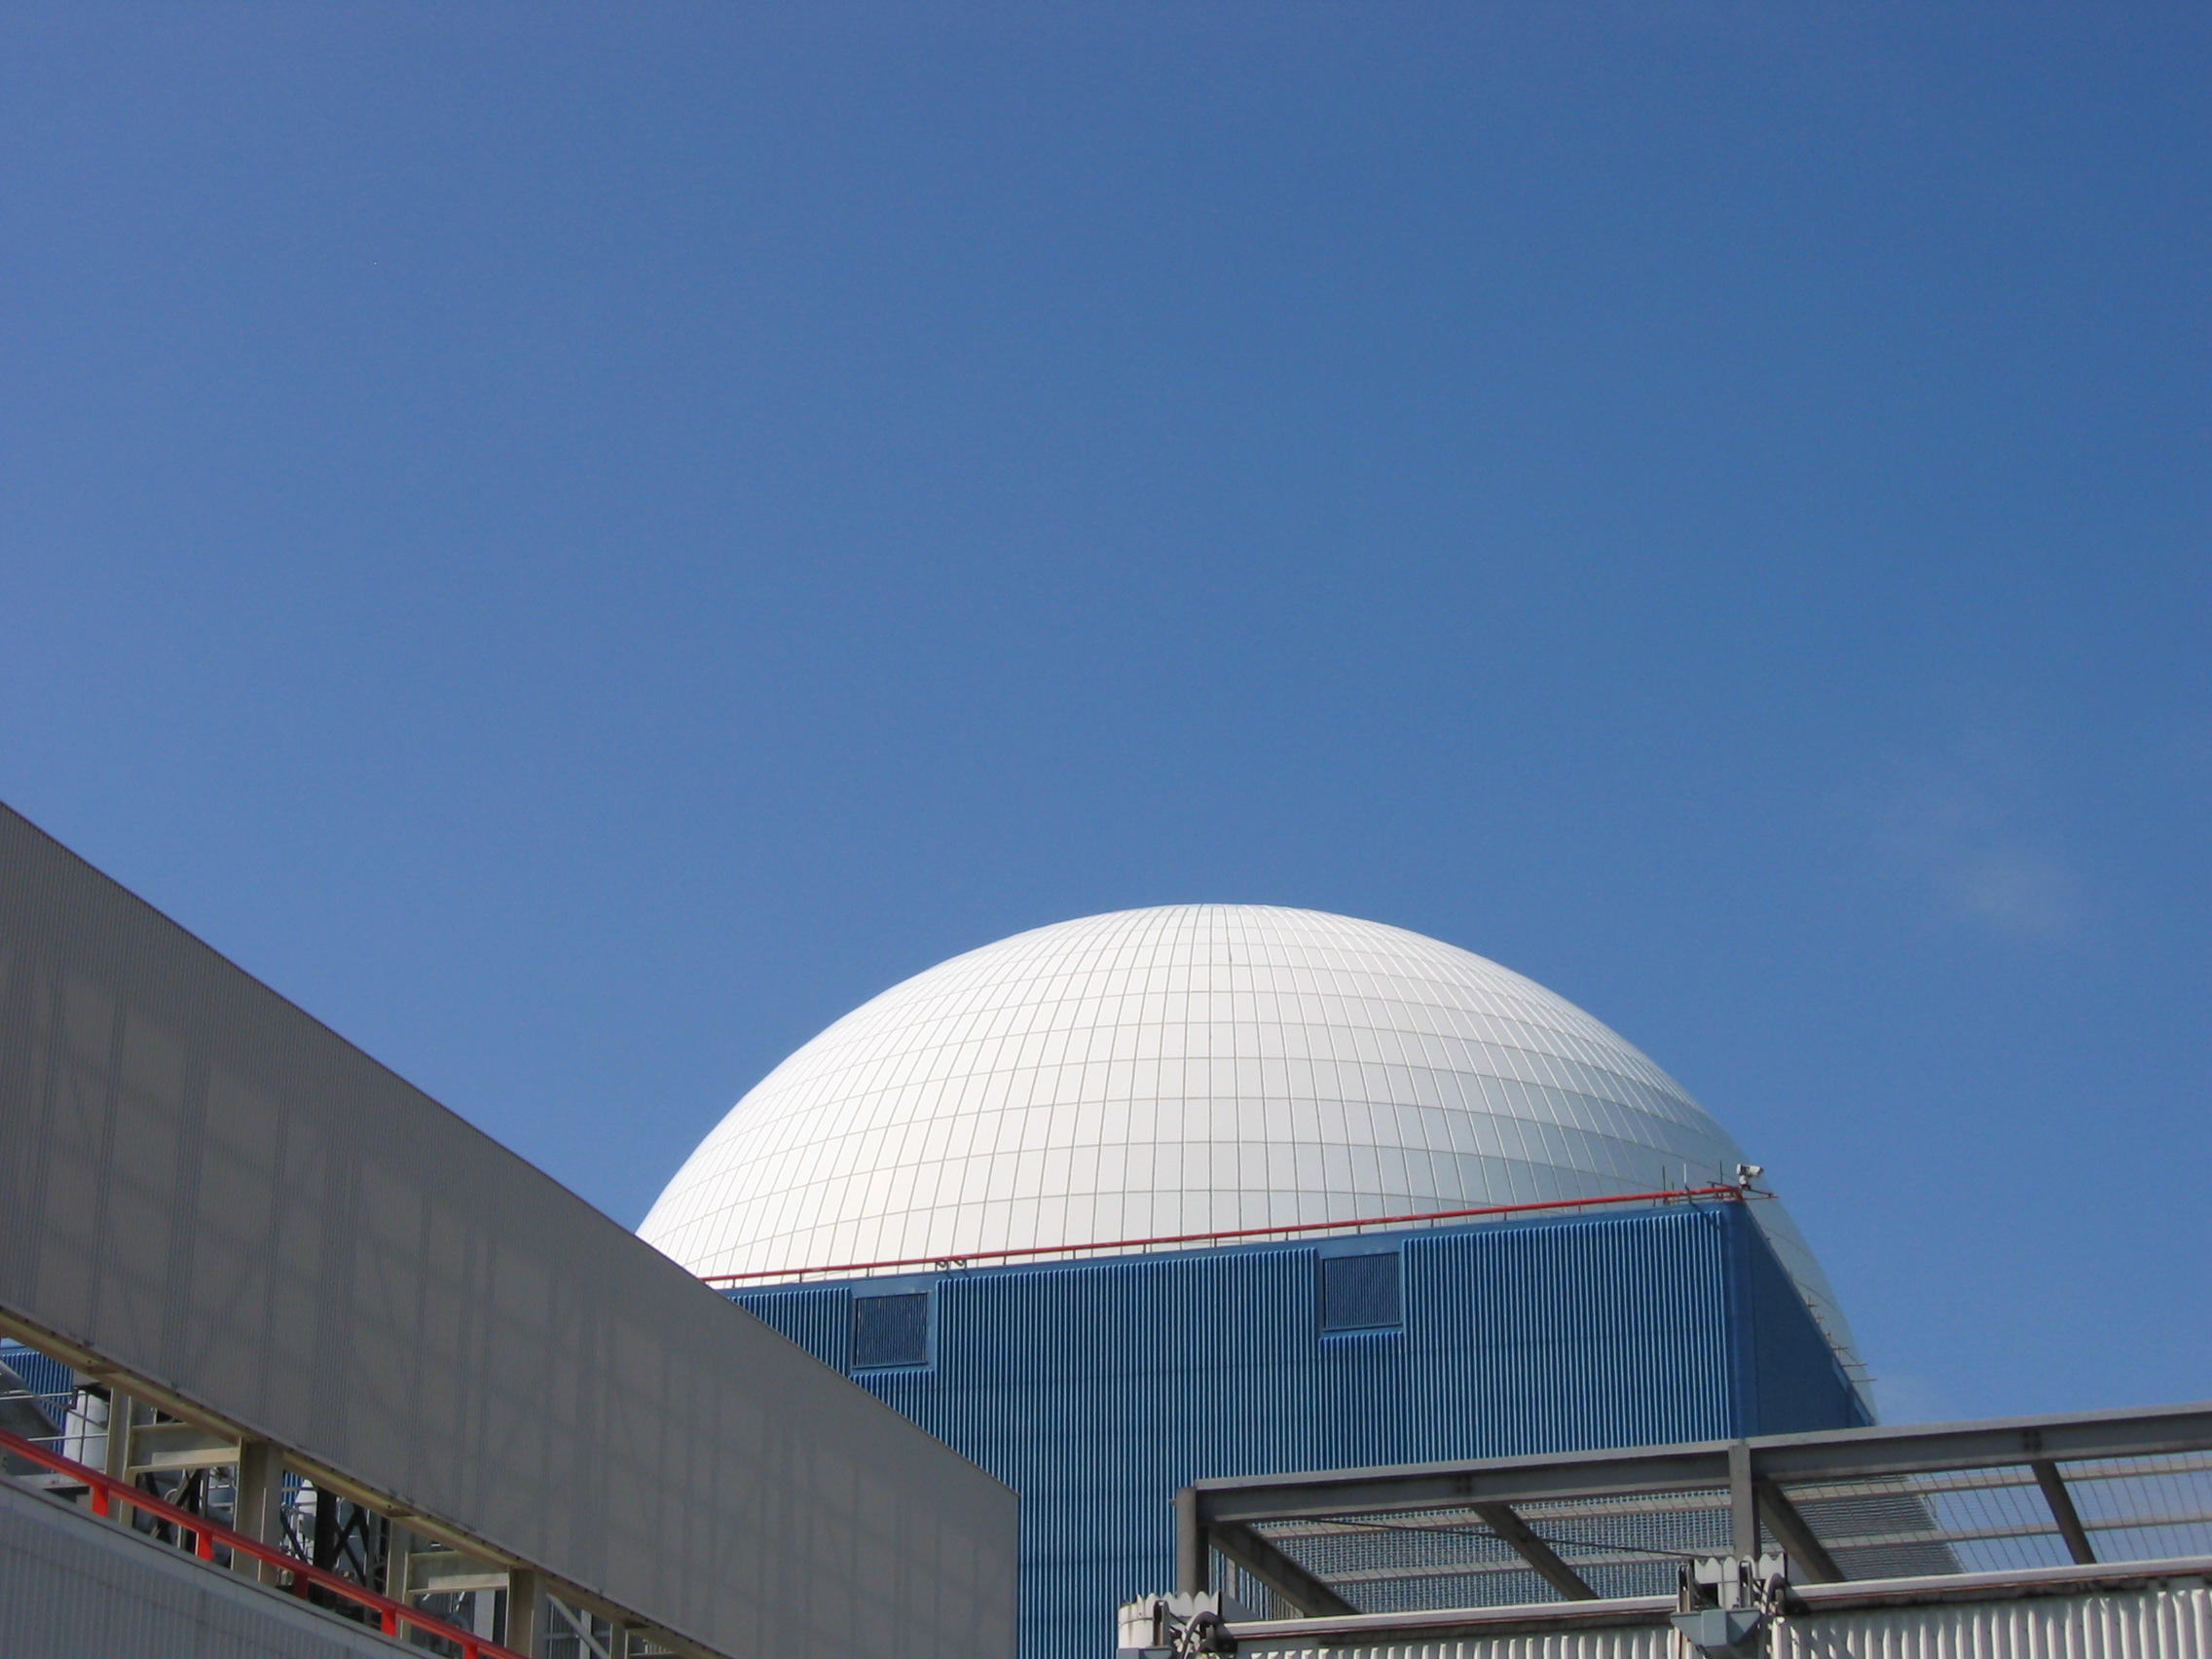 nuclear-power-station-3-1442418